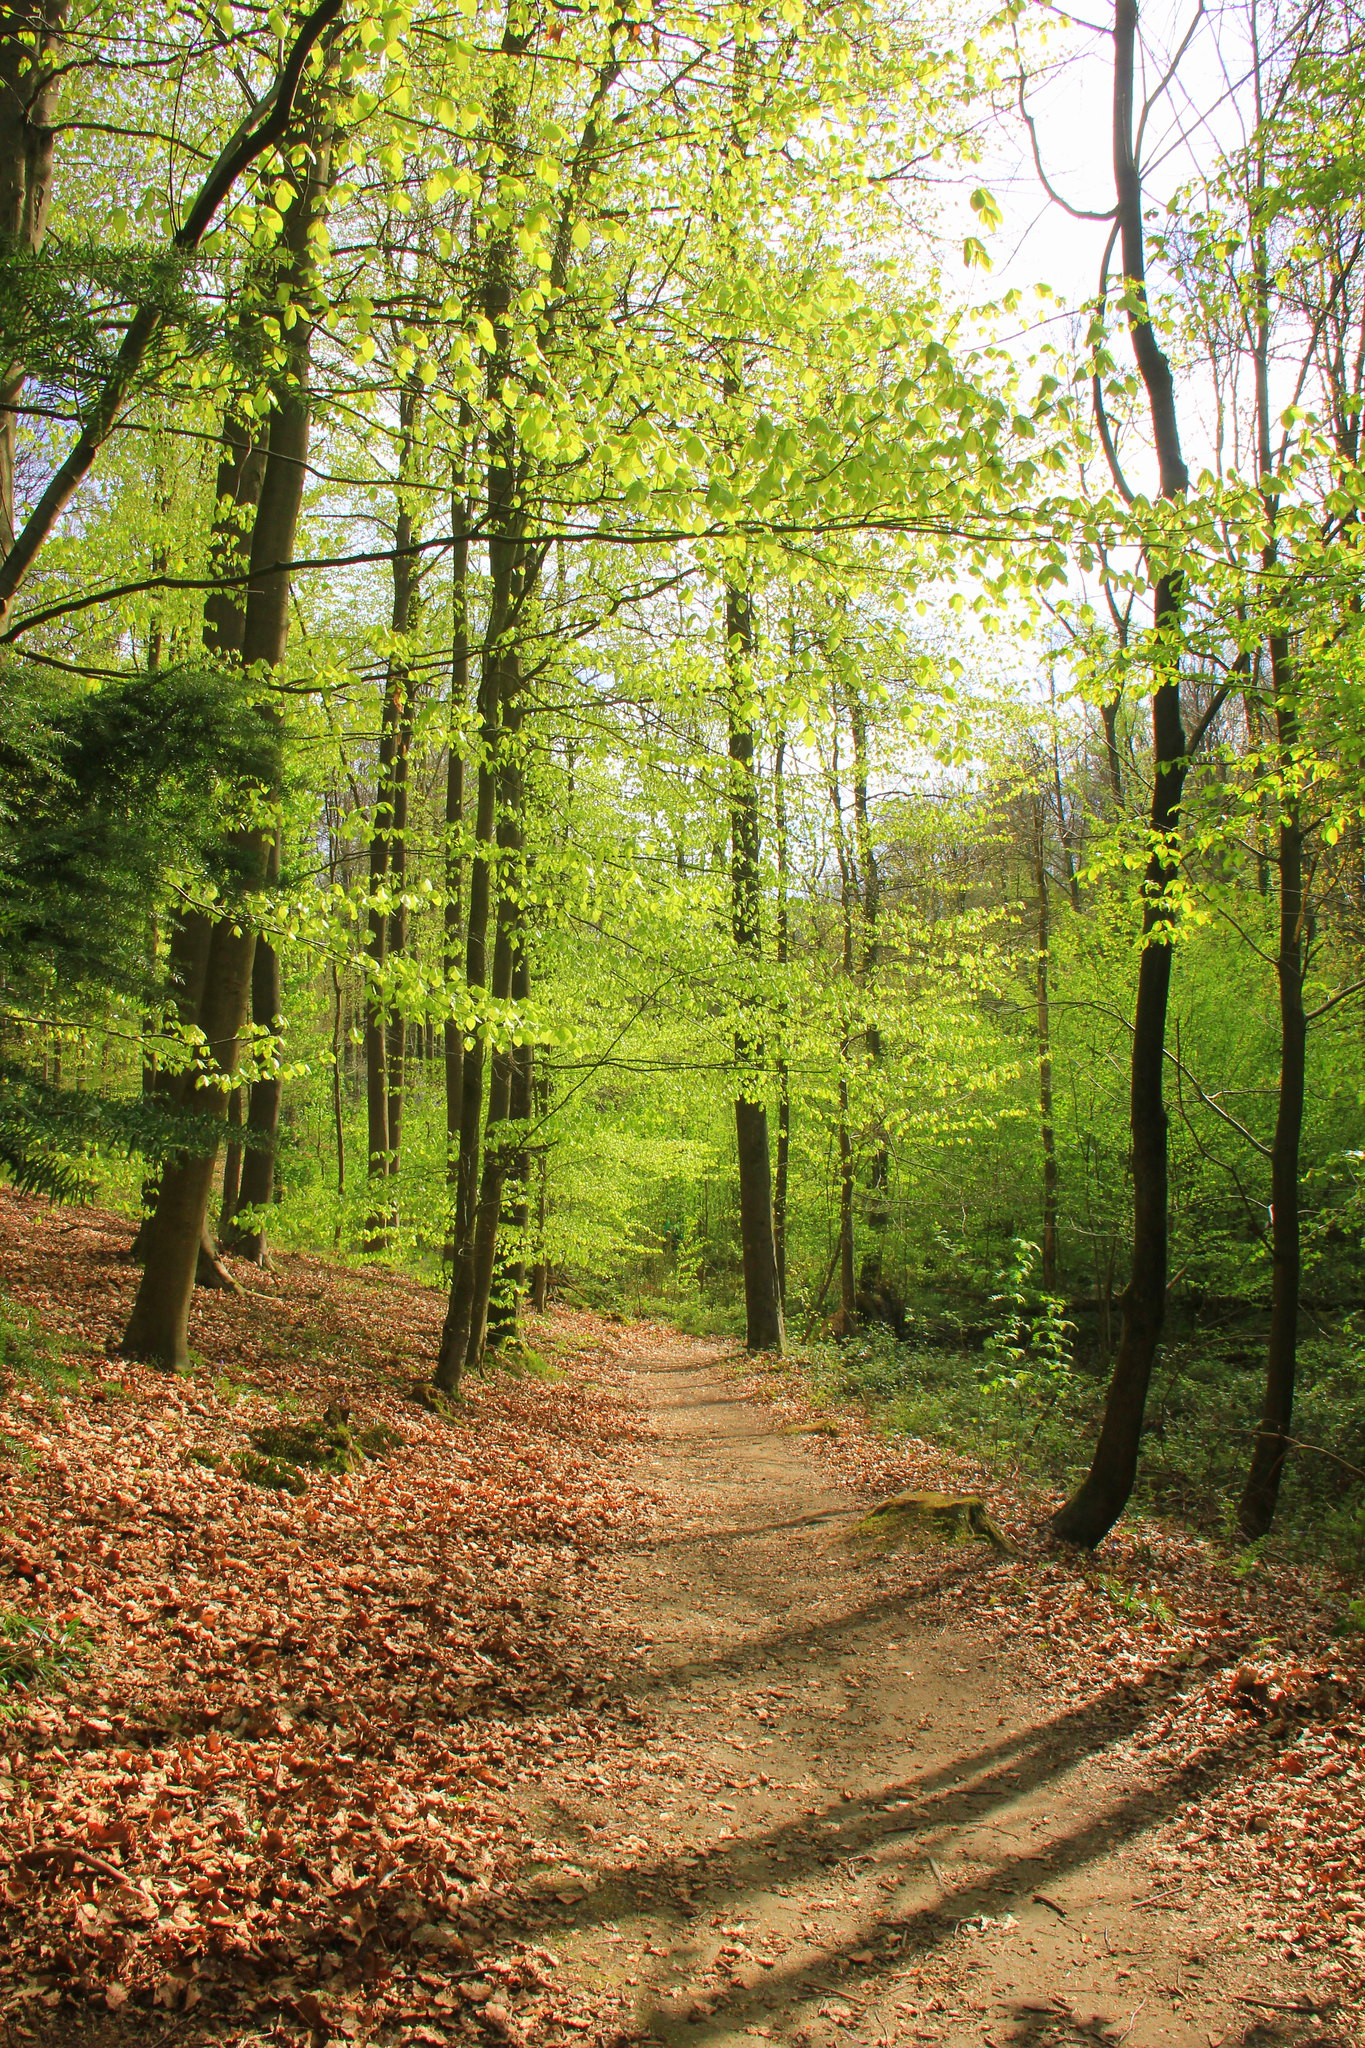 hallerbos is a lovely forest in belgium